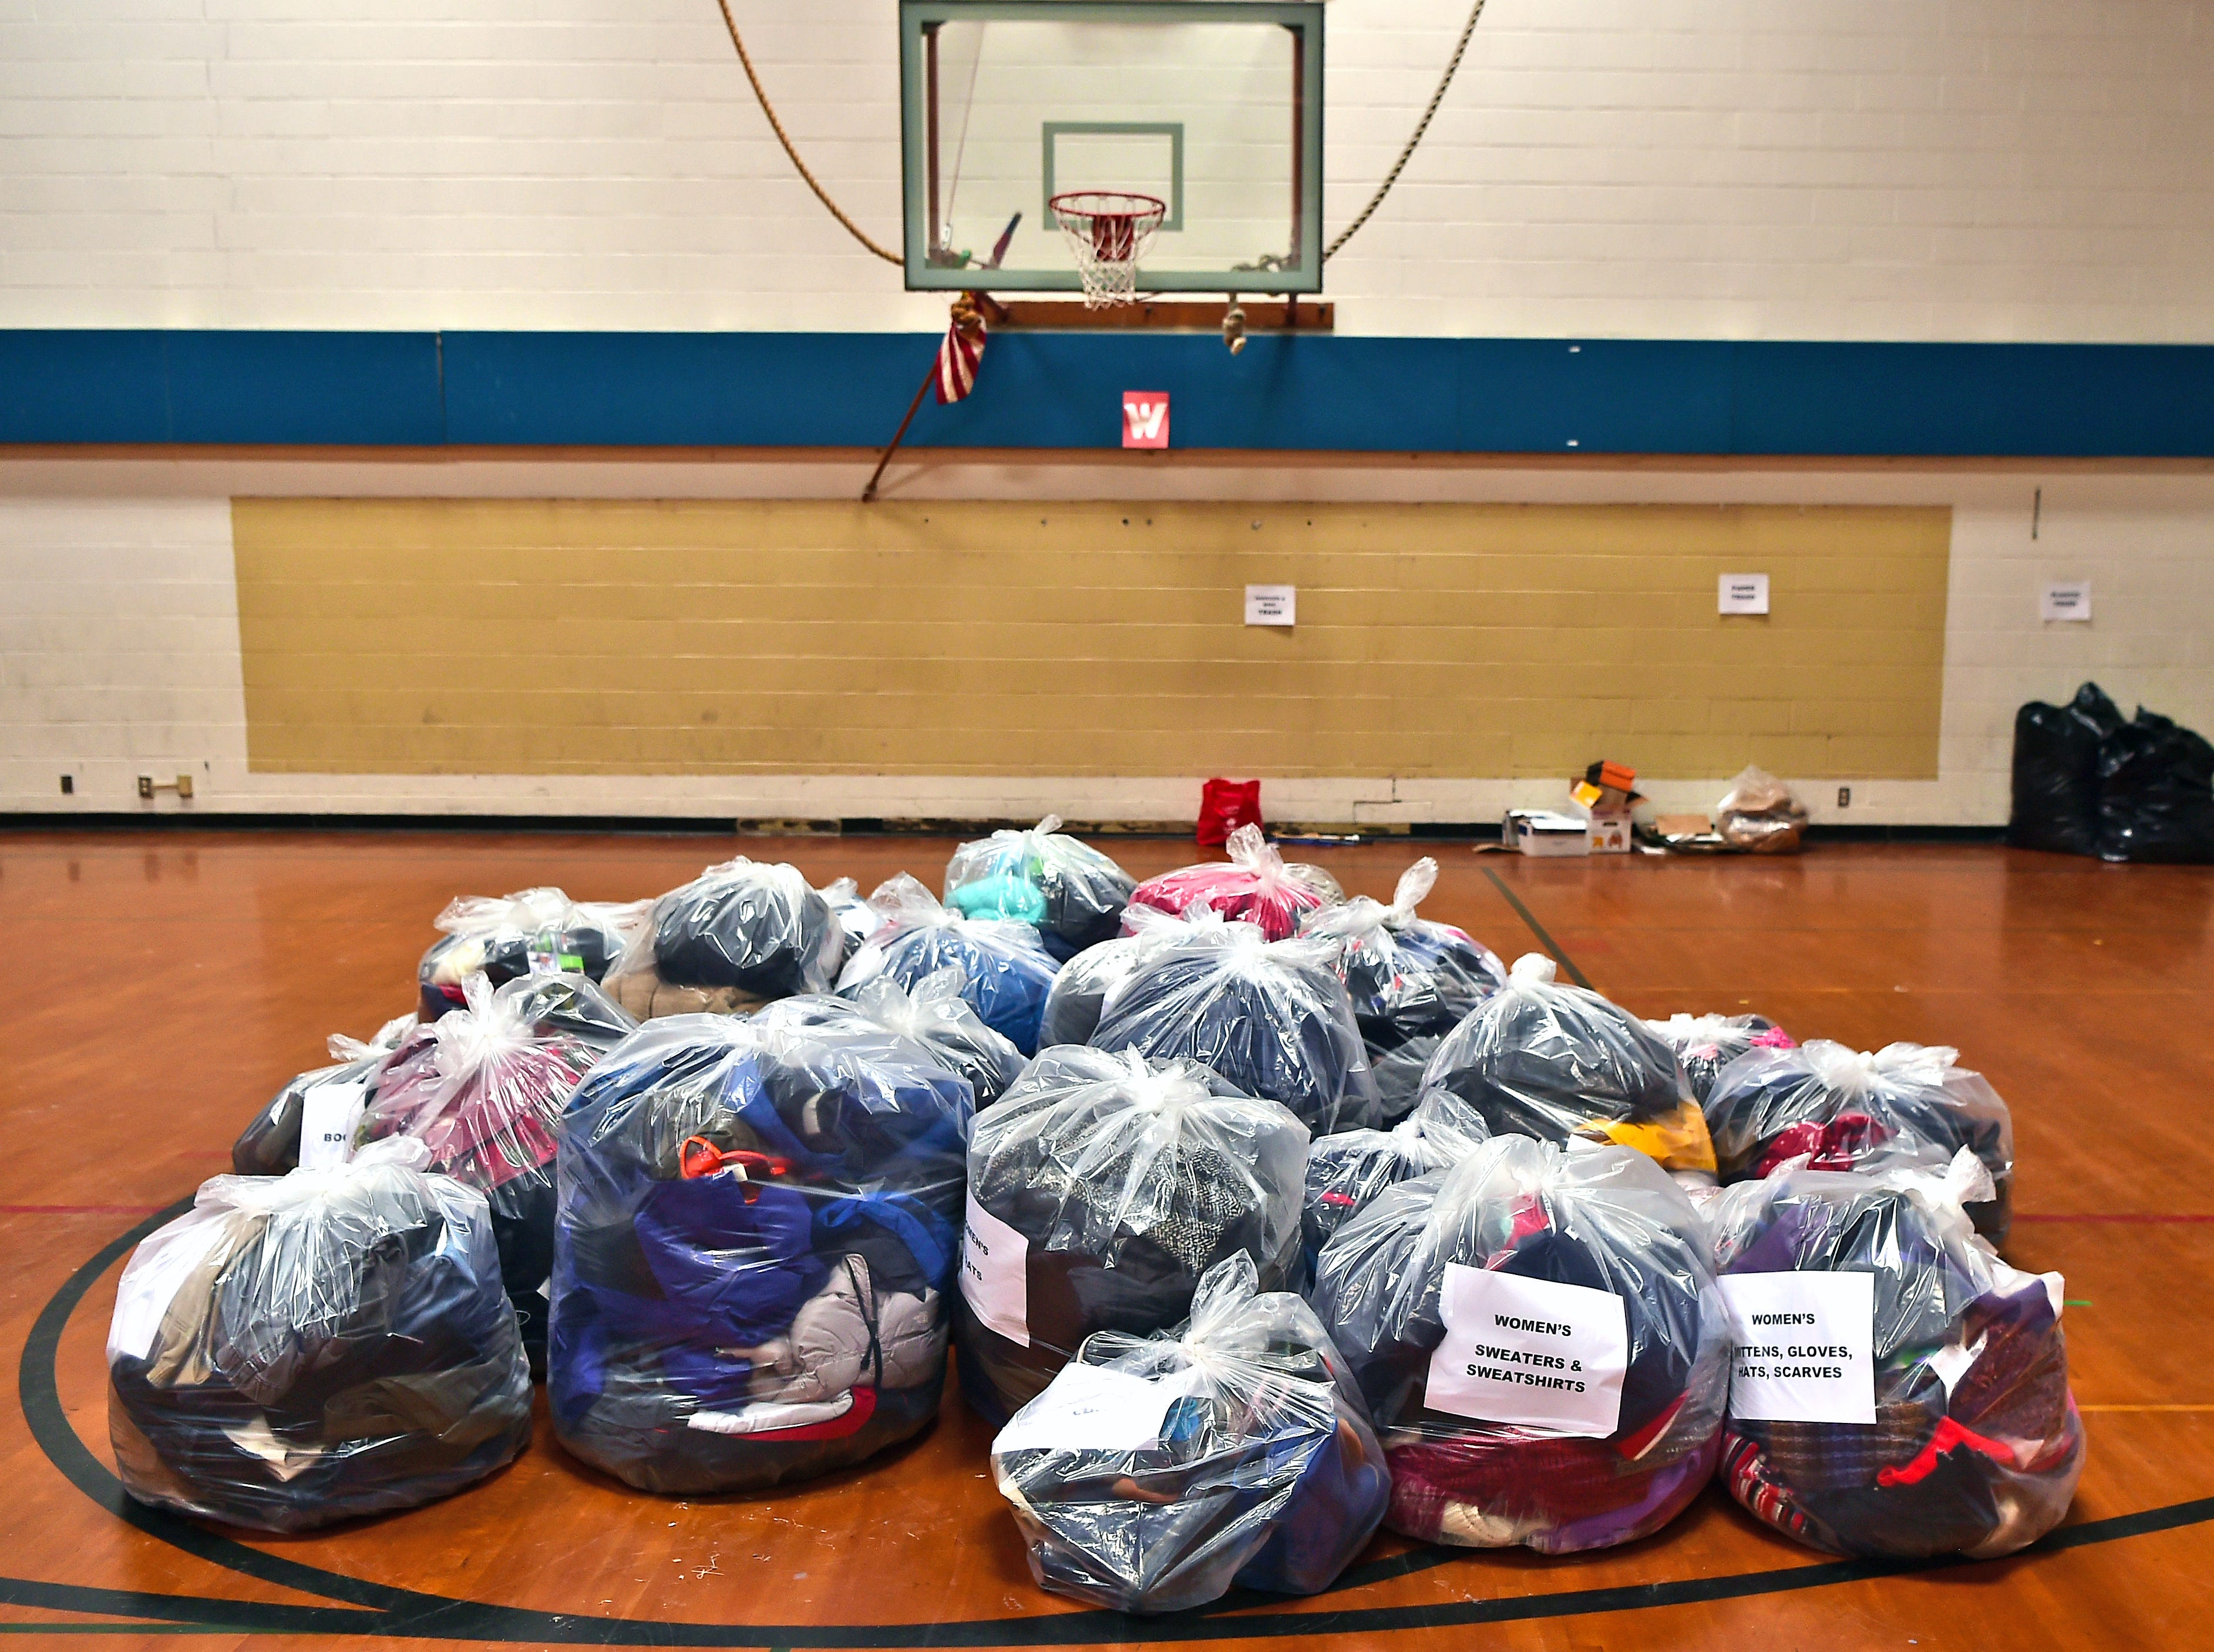 Catholic Charities of Tompkins/Tioga staff and volunteers work at readying winter clothing donations in Ithaca on Thursday, November 29, 2018.